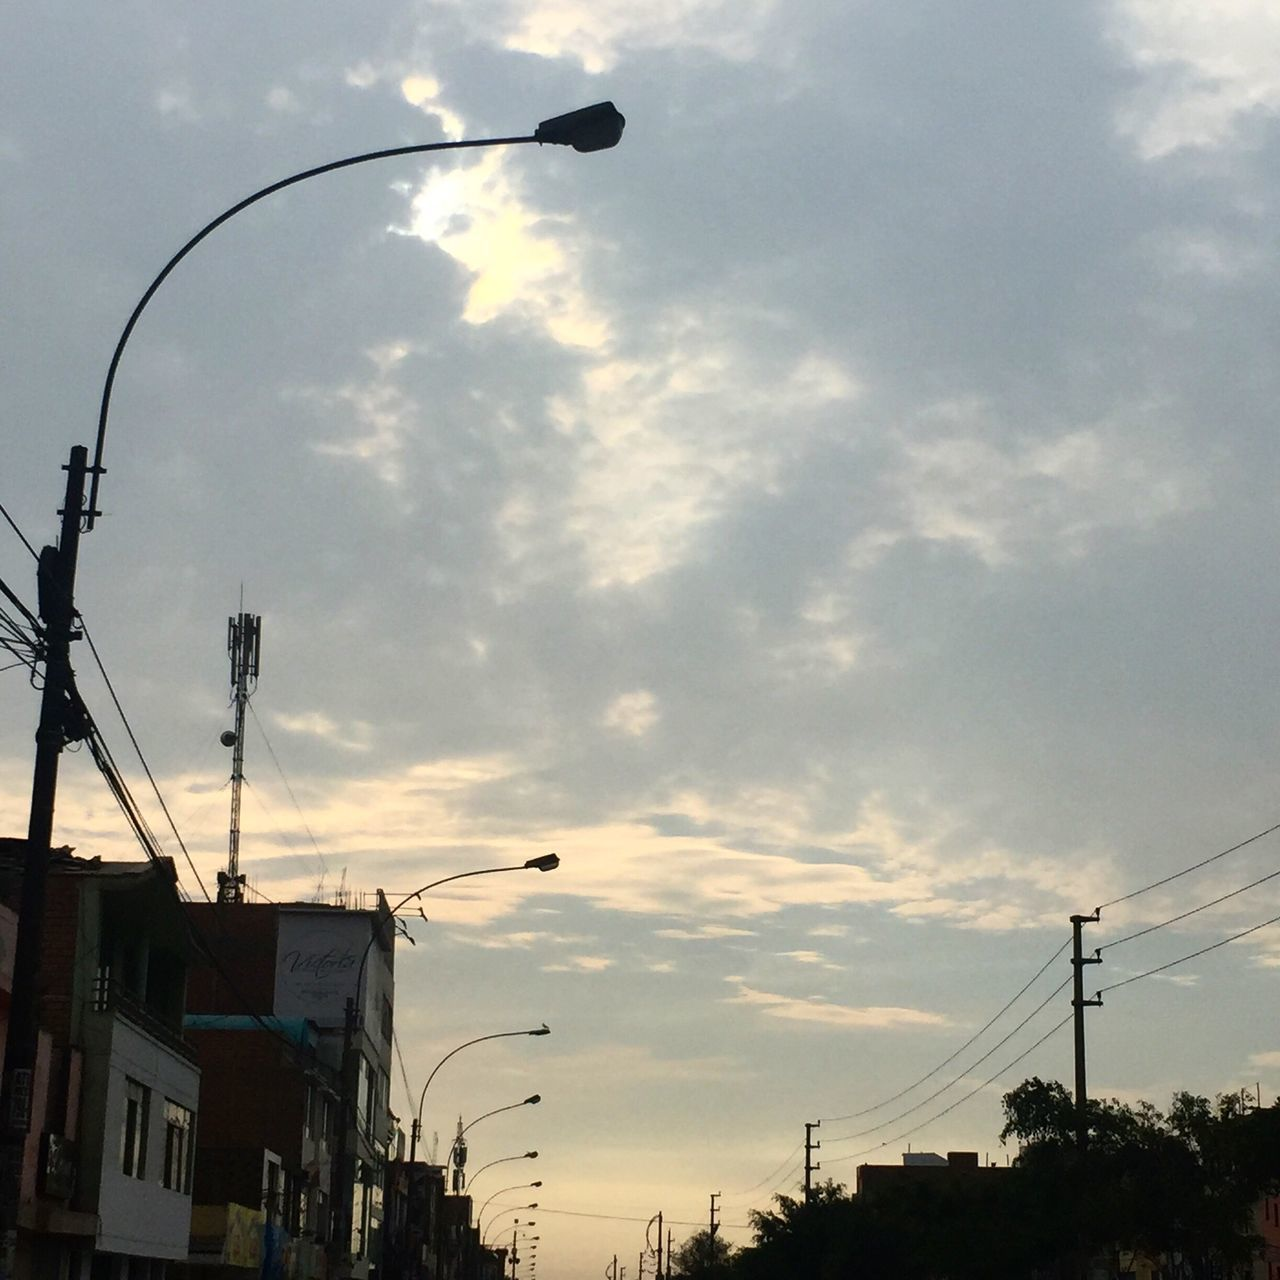 Sky Cloud - Sky Built Structure Street Light No People Sunset Transportation Architecture Outdoors City Building Exterior Nature Day